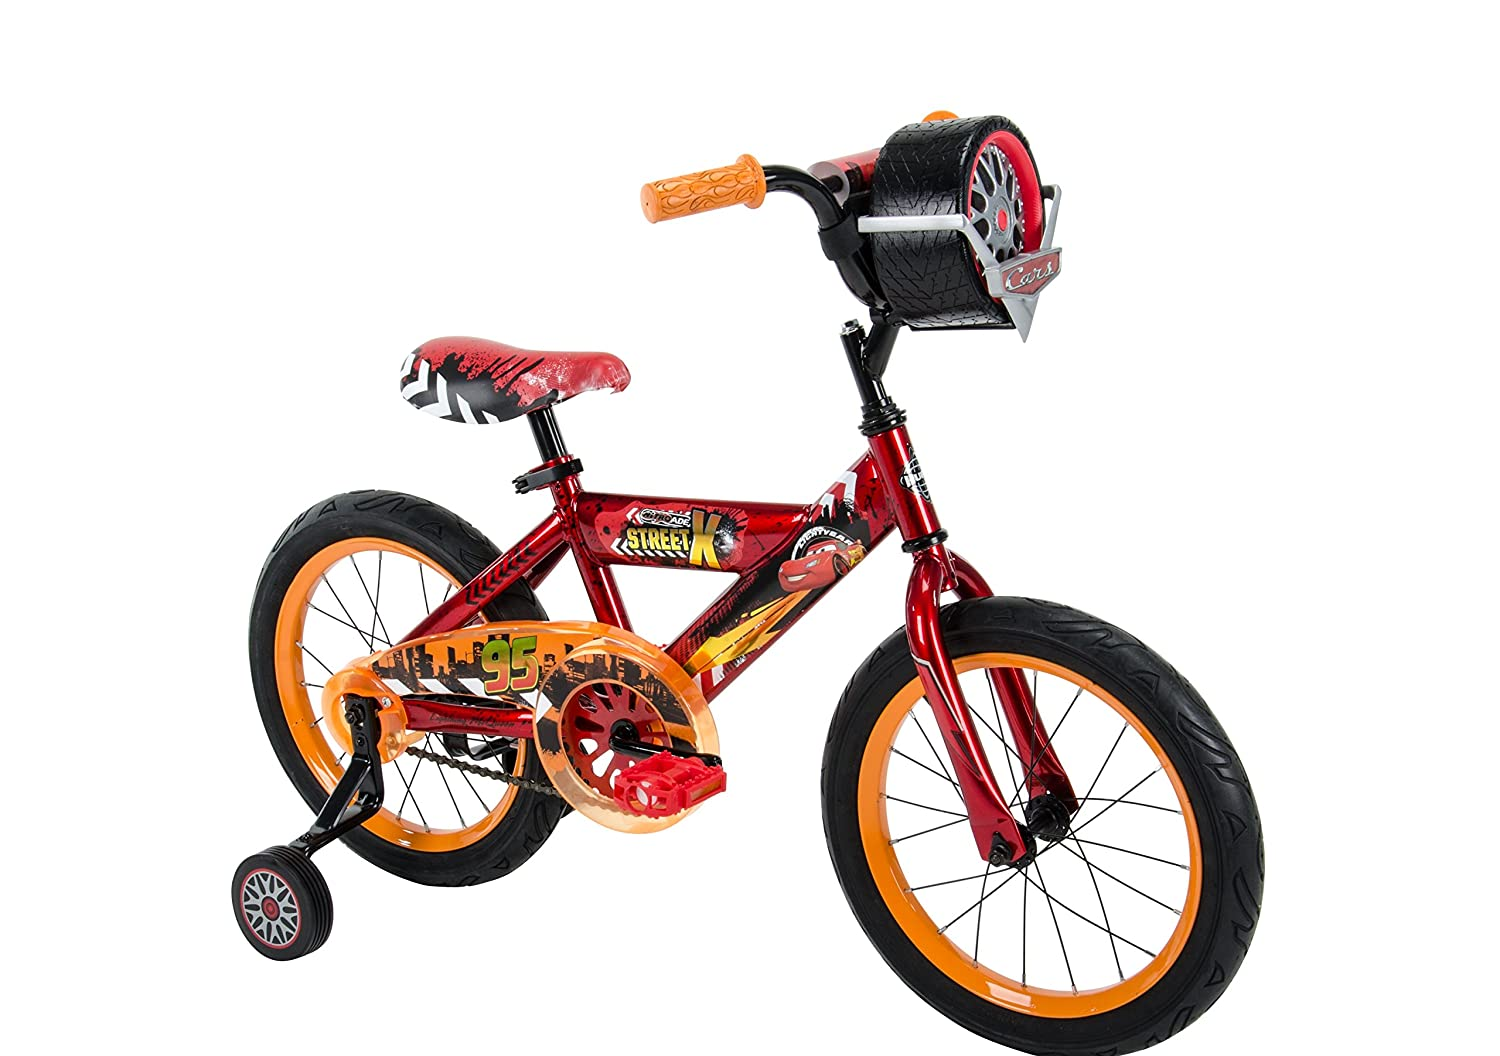 Huffy Bicycle Company 21786 Boys Disney Cars Bike, 16, Red/Black by Huffy Bicycle Company   B0188Z7HO0